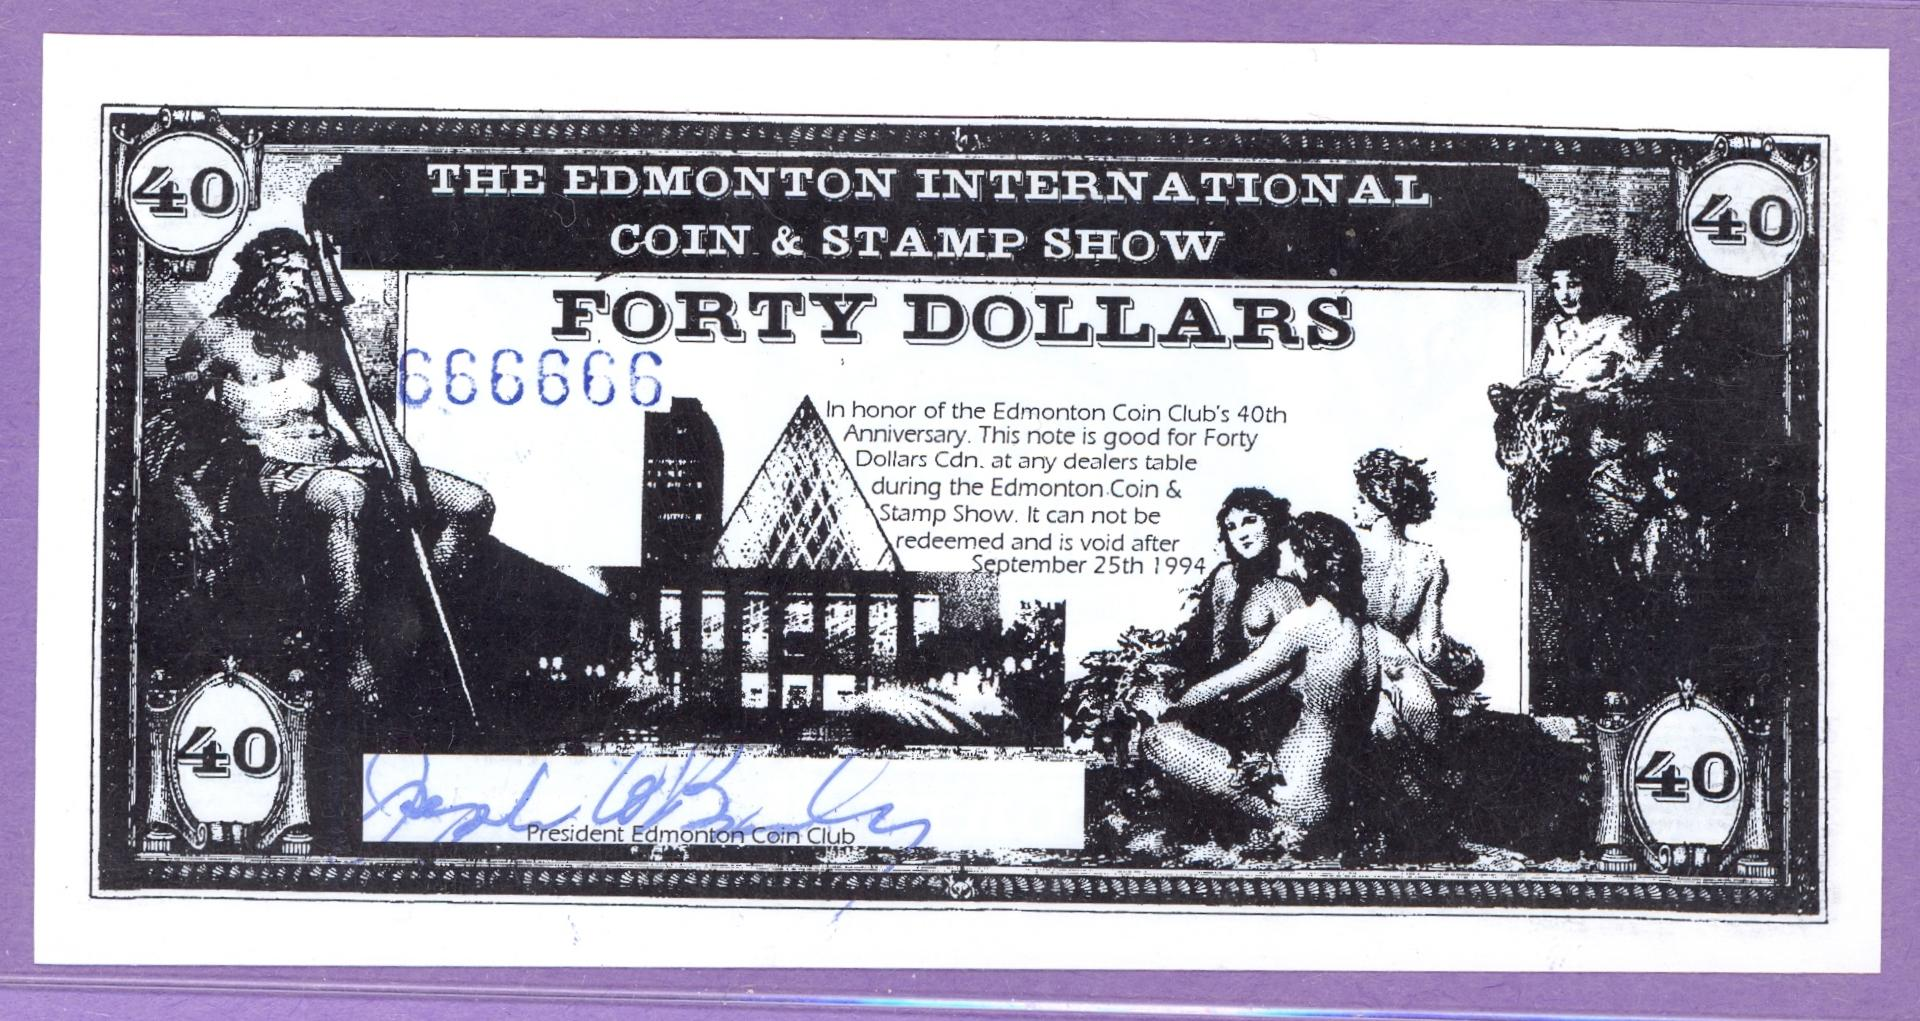 1994 Edmonton Coin Show 40th Anniversary $40 Coupon s/n 666666